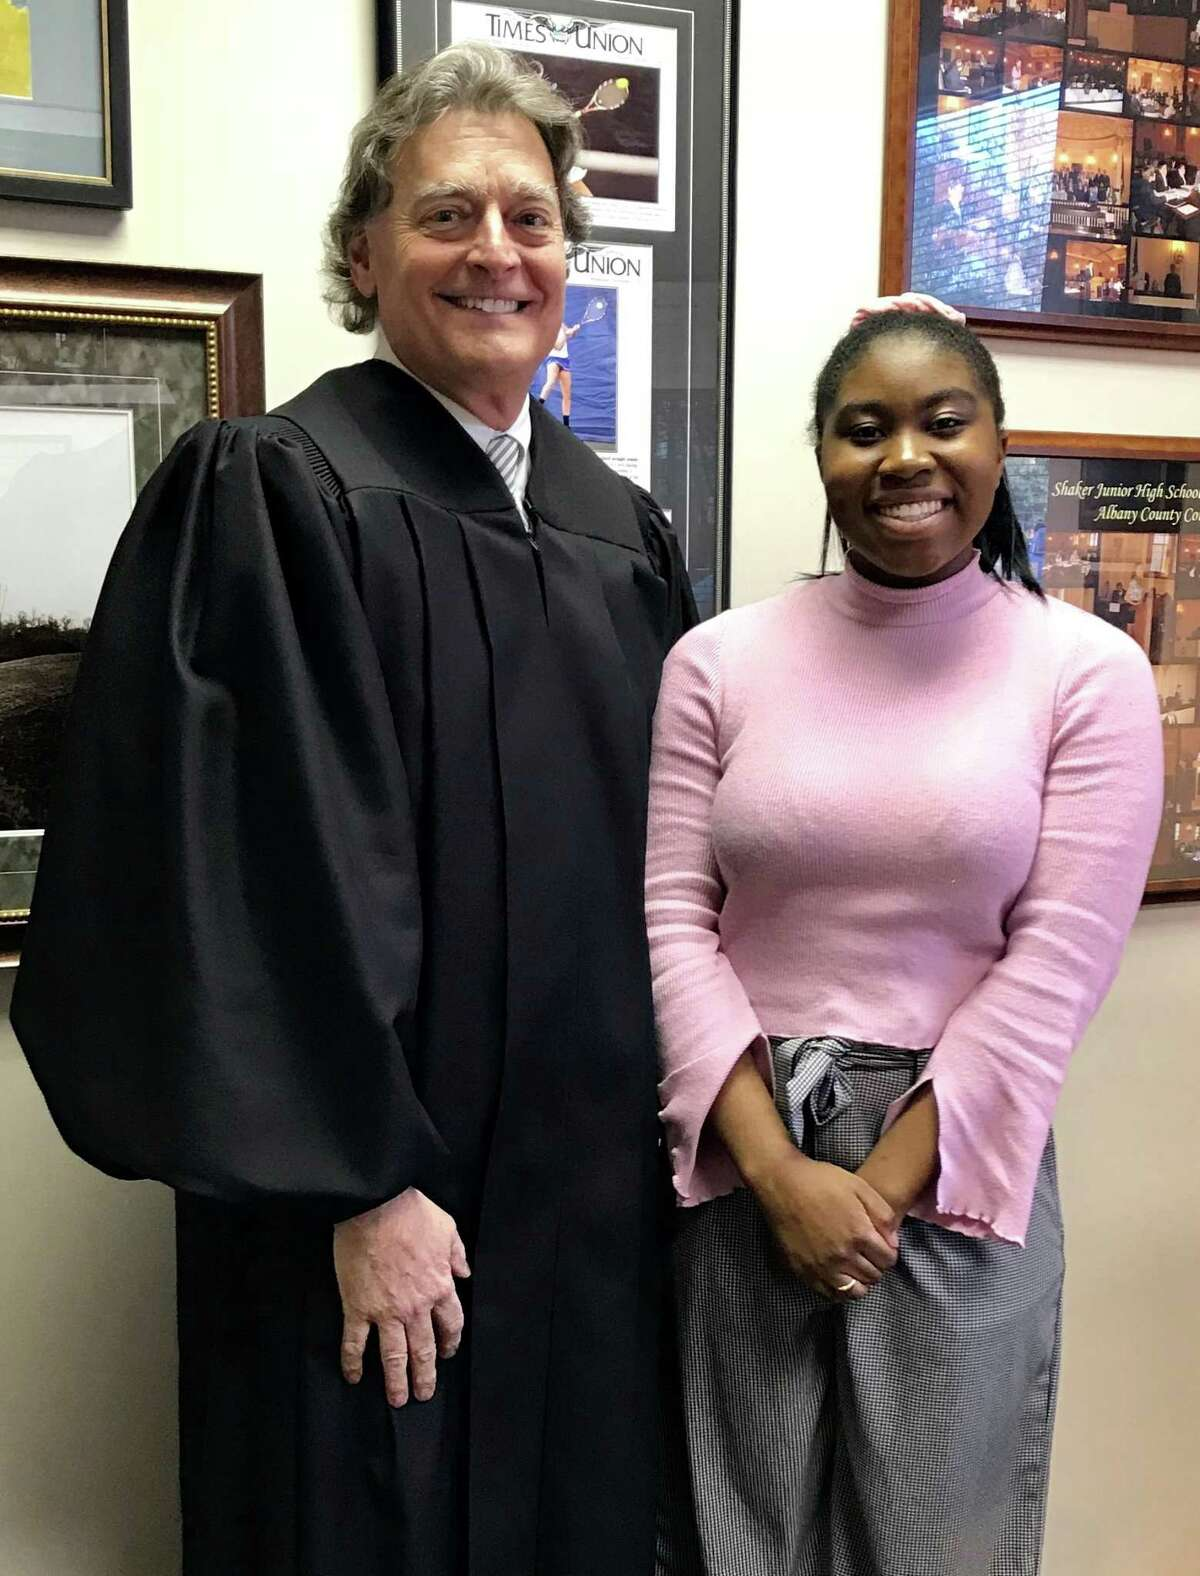 Tattiahna Welch of Albany in Chambers with Senior Colonie Town Judge and Court Administrator Peter G. Crummey before sitting with the judge during a court session on April 1. Welch is an undergraduate student at SUNY Purchase and is interested in the practice of law. She first met the judge while in high school as a member of the mock trial team of the Albany Academies. (Courtesy Peter Crummey)